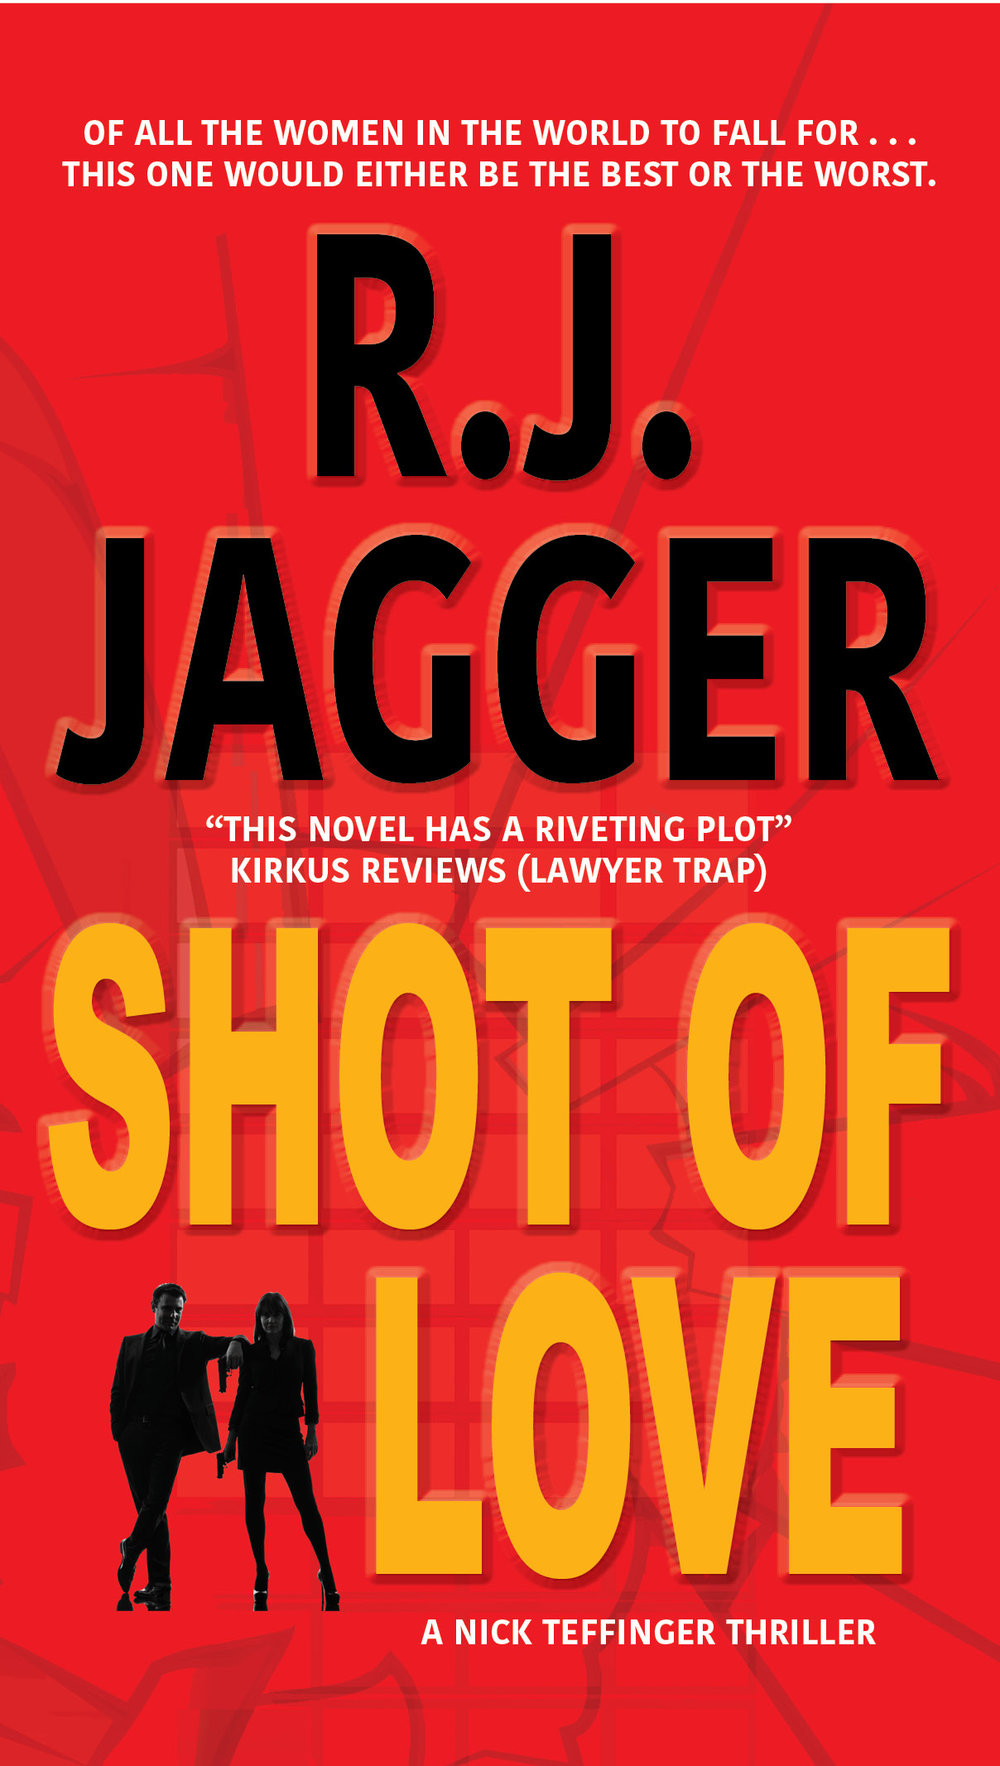 SHOT OF LOVE - In his riskiest and most personal case yet, Denver homicide detective Nick Teffinger crosses paths with an edgy little beauty who is either a killer or about to be killed, or both. Either way, she's on the run, and now so is he.The audiobook version of this title is being produced by the award-winning Roger Rittner Productions in LA and is being narrated by the incredibly talented TV and film actress Robin Riker (NCIS, Boston Legal, General Hospital, etc.), actor Daniel Chodos (Outbreak, etc.), and others. Sound effects, music and background accents are being added to create a soundtrack of stunning audible delight. This production clears the highest bars for excellence in audiobook creation and is something you will definitely want to experience.Coming September 15, 2018 in hardcover (ISBN 978937888442)  ebook (ISBN 9781937888466) and audiobook. Coming mid-2019 in mass-market paperback (ISBN 9781937888978).Distributed by Ingram.